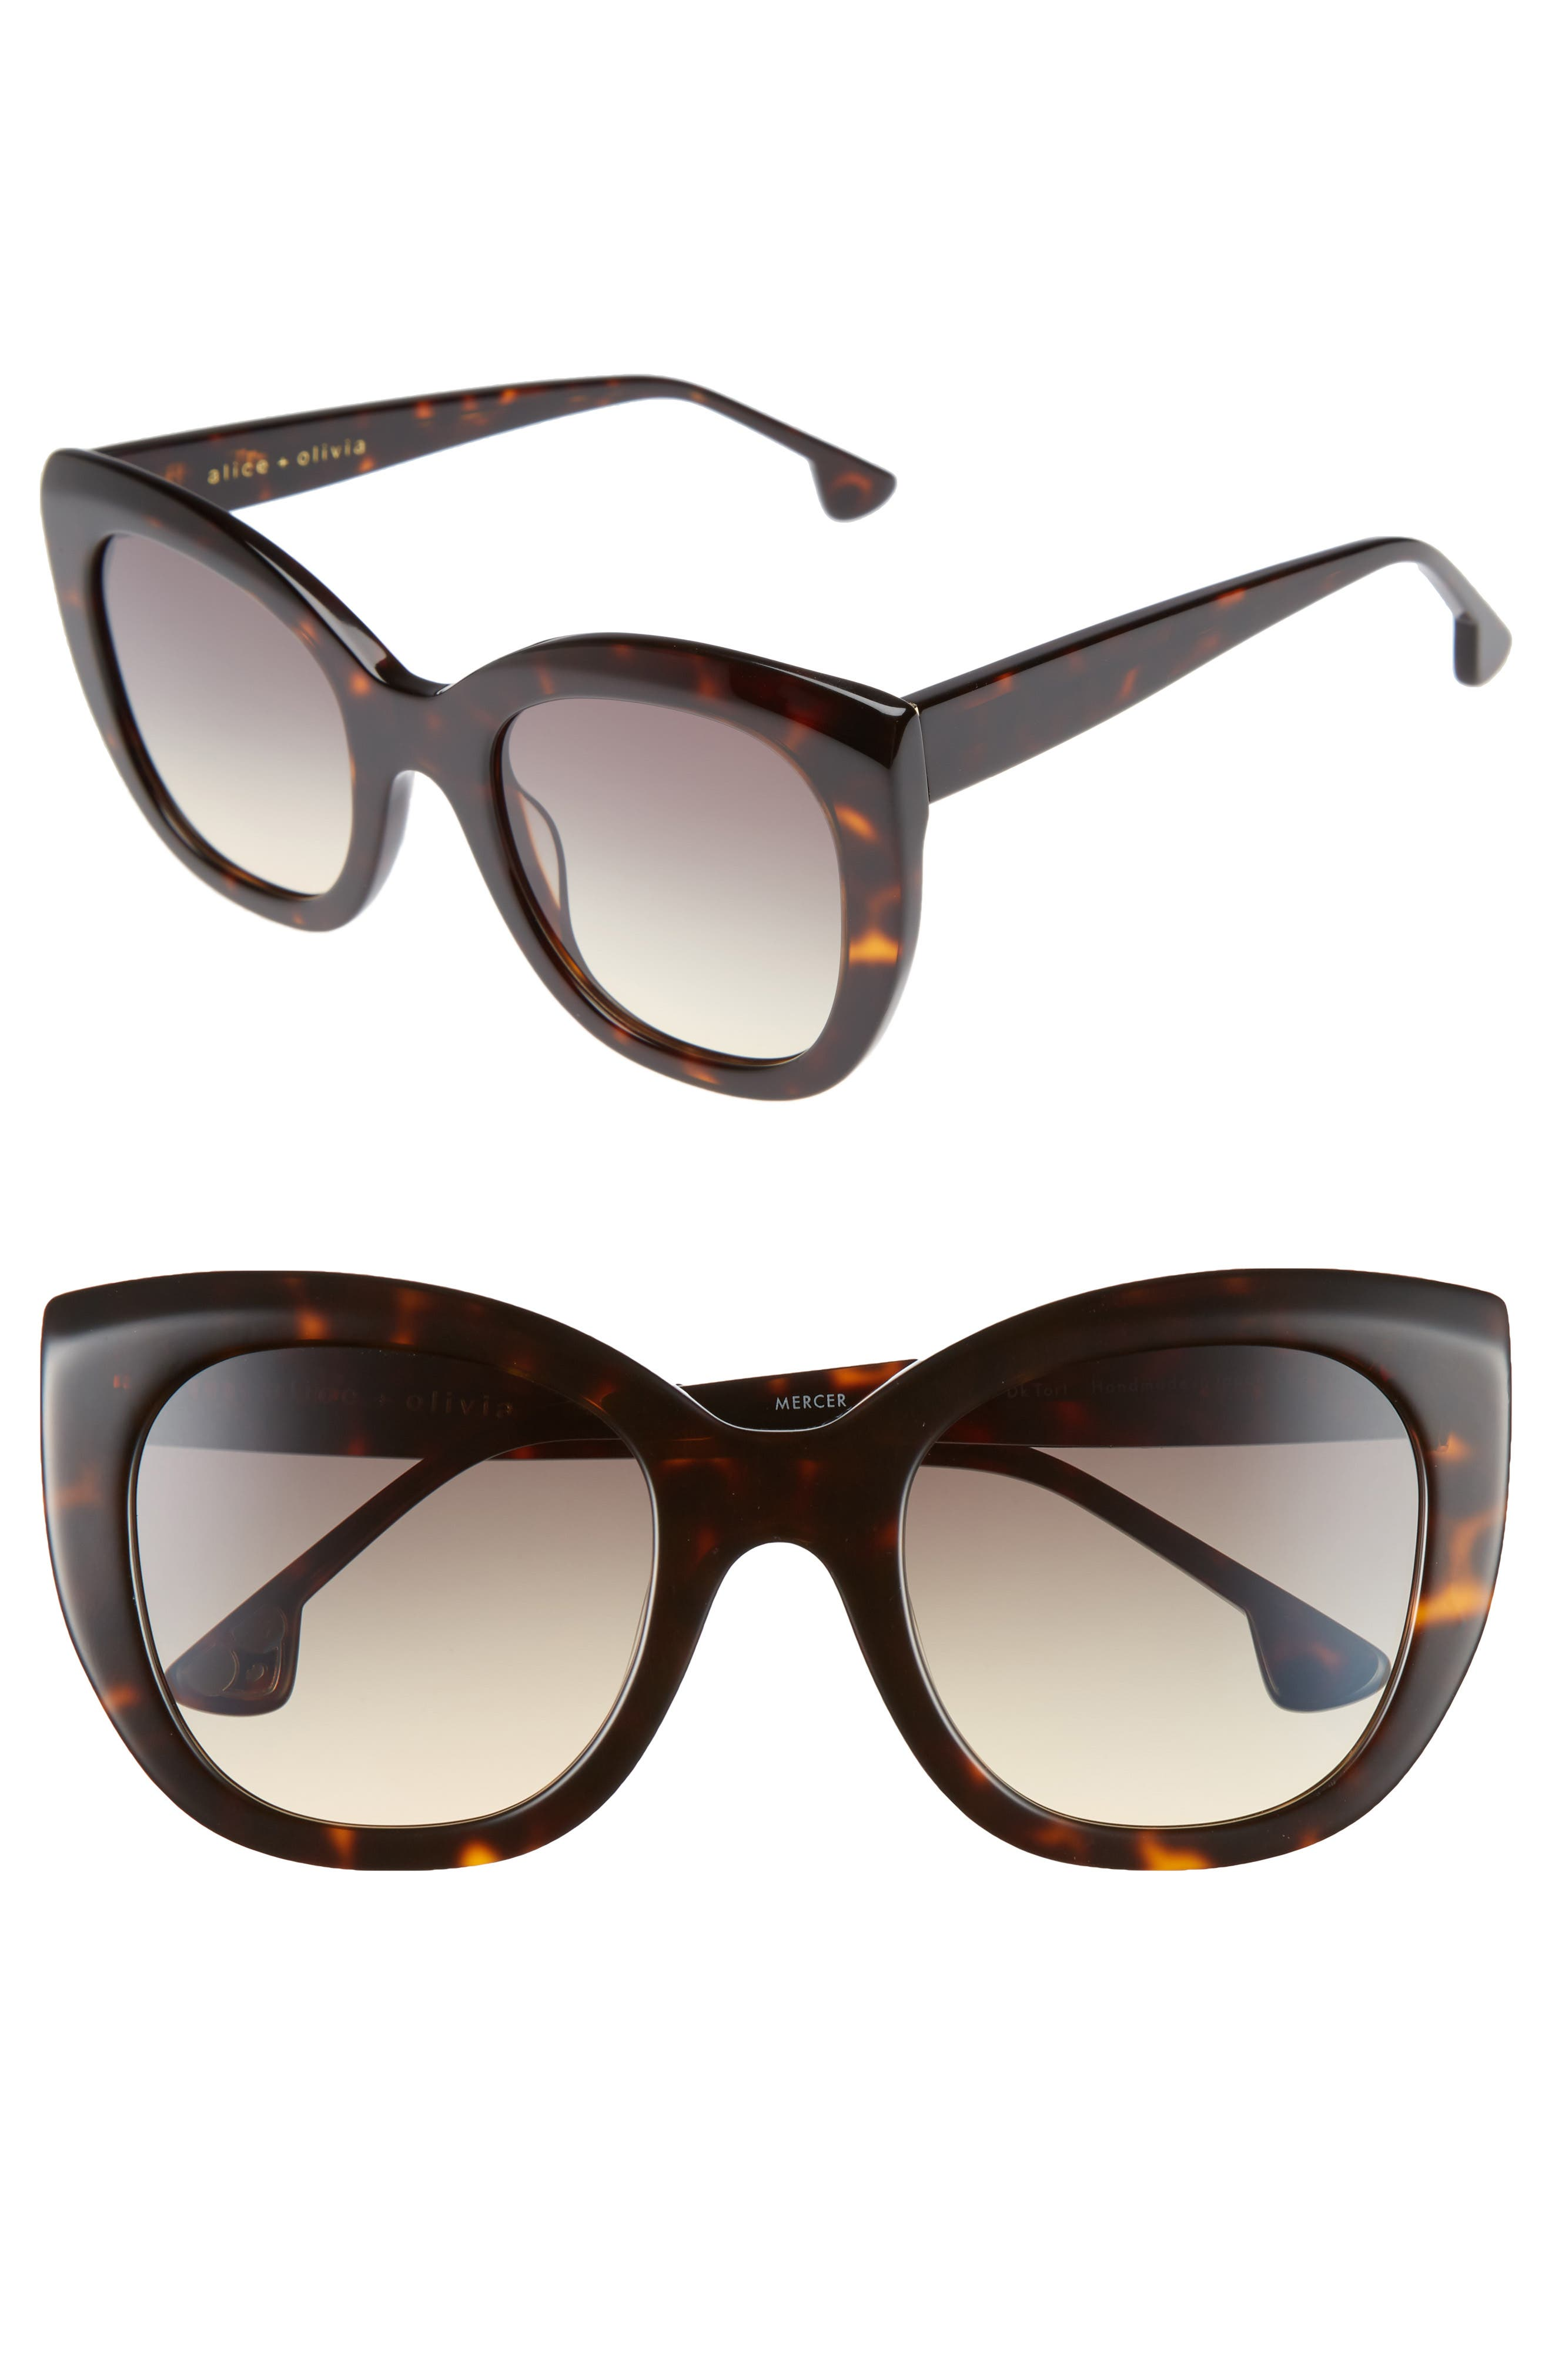 Mercer 52mm Cat Eye Sunglasses,                             Main thumbnail 2, color,